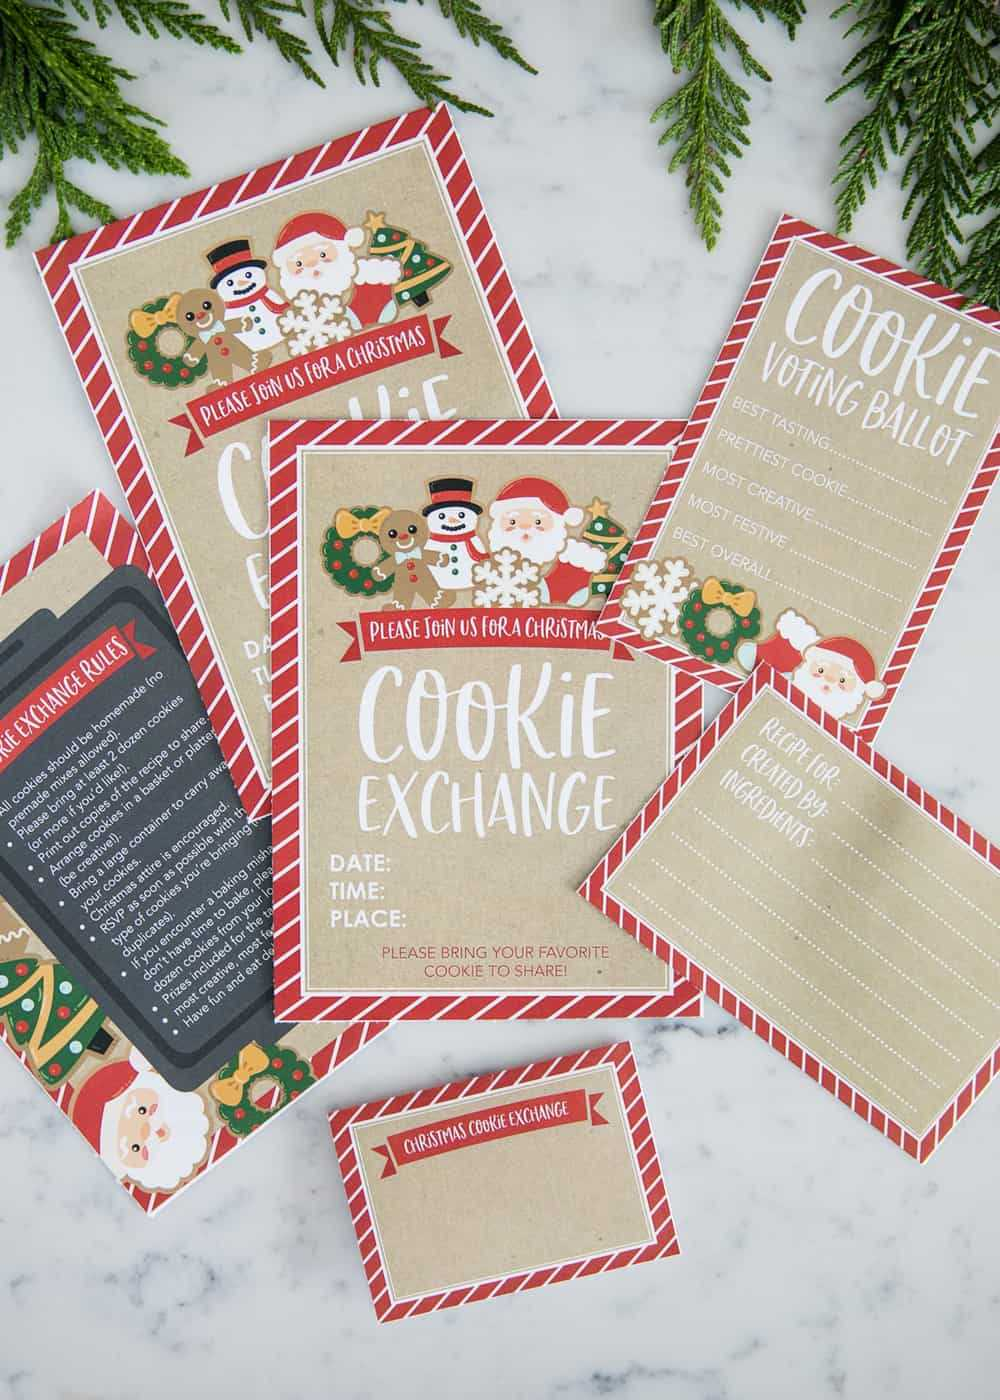 How To Host A Cookie Exchange (W/ Free Printables!) – I Throughout Cookie Exchange Recipe Card Template